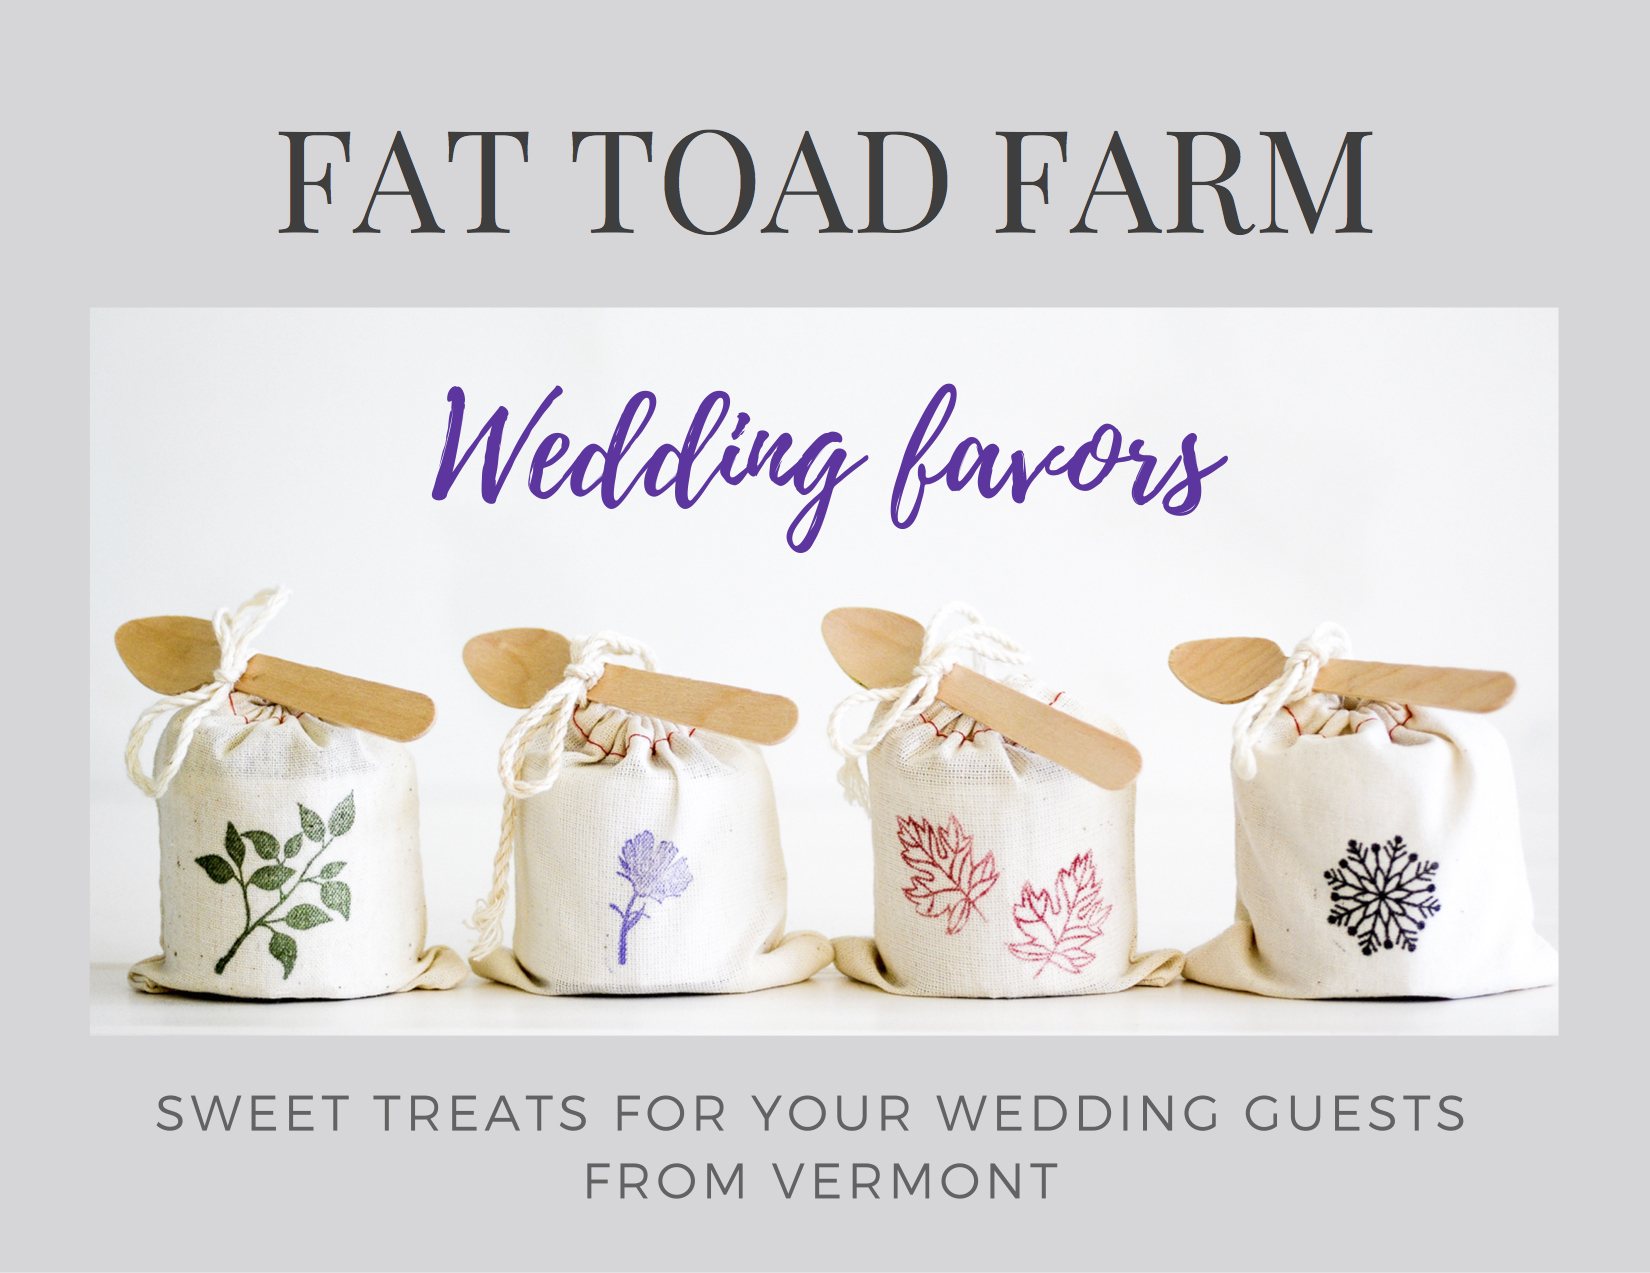 wedding-favors-large.jpg